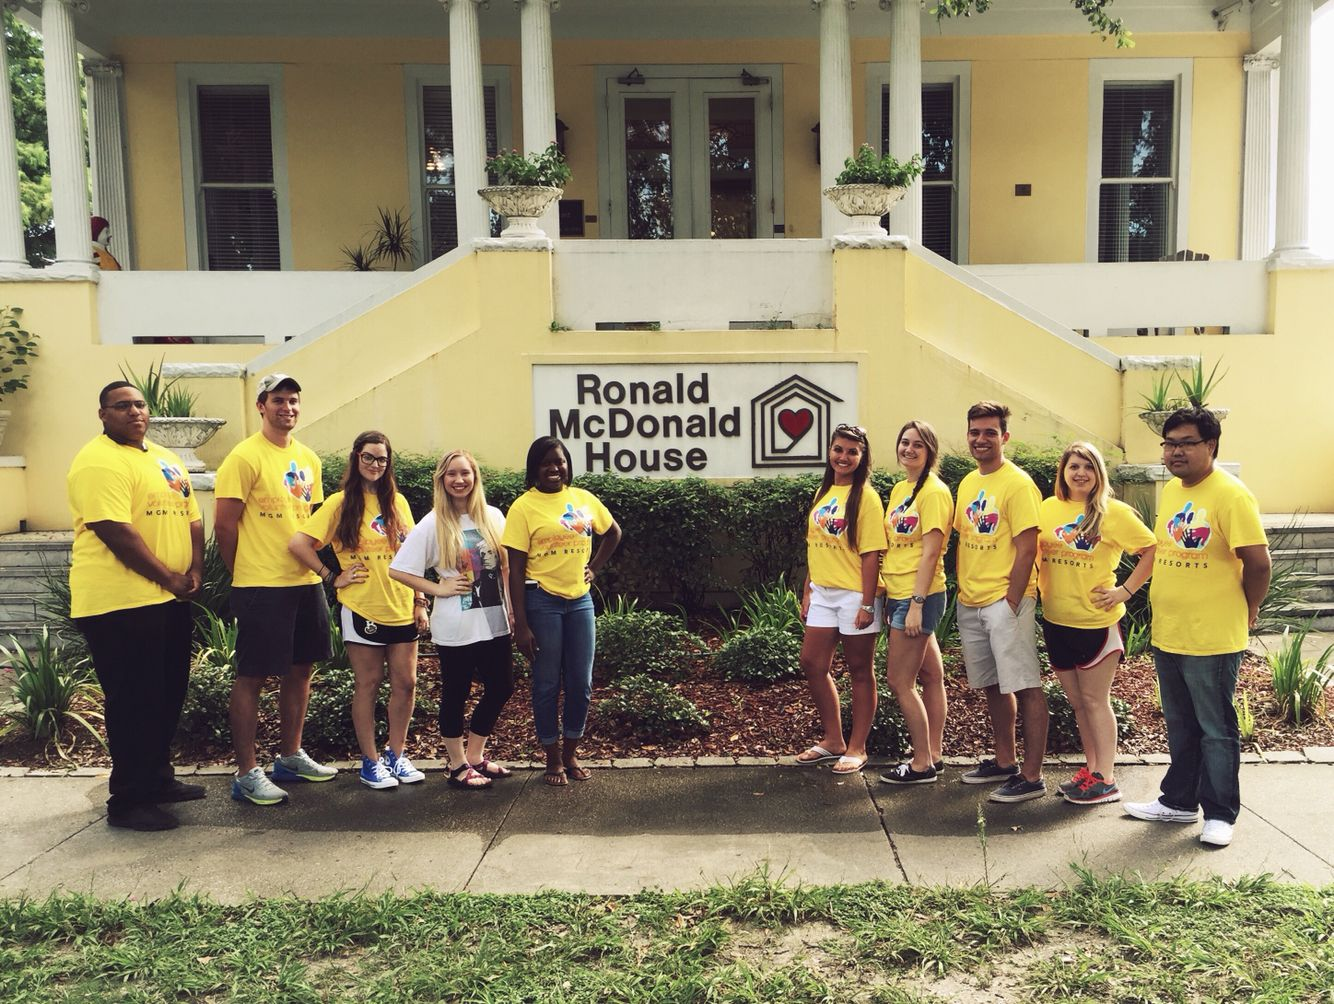 The HIP interns had the opportunity to volunteer our time at Ronald McDonald house in New Orleans, Louisiana. It is a wonderful organization that allows free housing to families while their children are being treated.